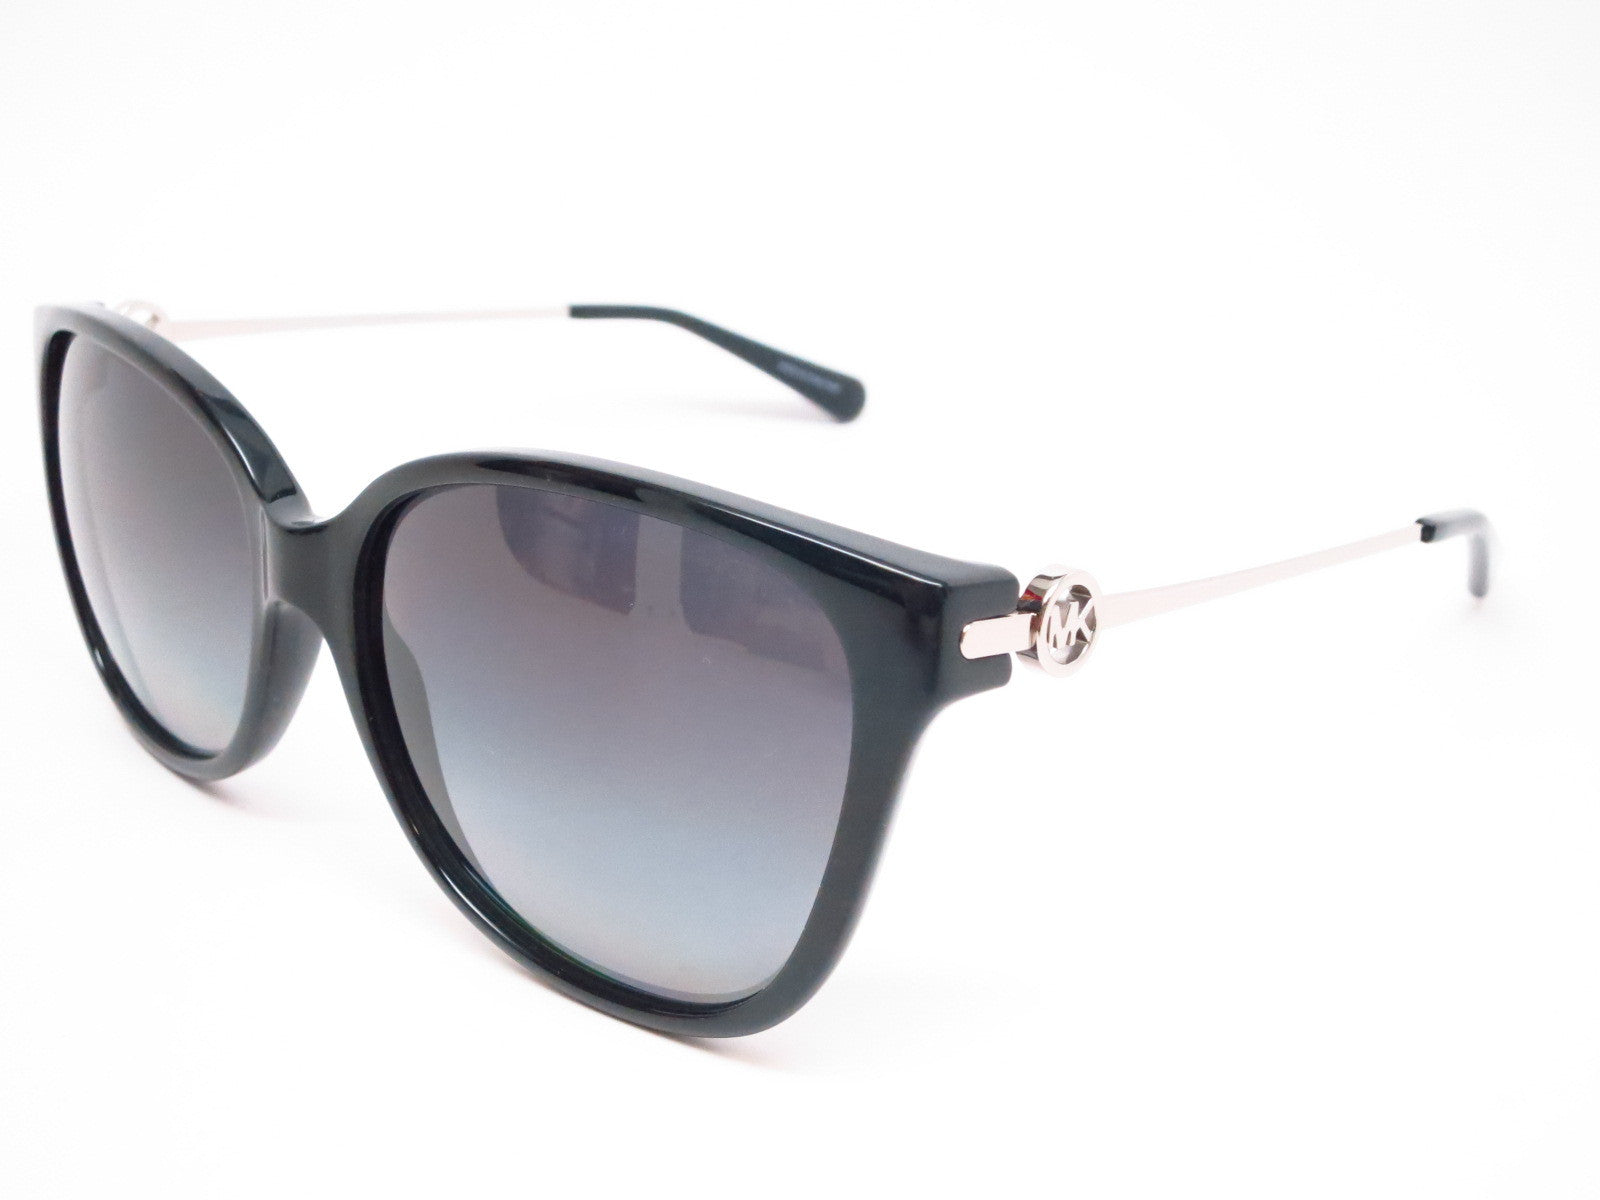 0abd50b3b6 Michael Kors MK 6006 Marrakesh 3005 T3 Black Polarized Sunglasses - Eye  Heart Shades ...